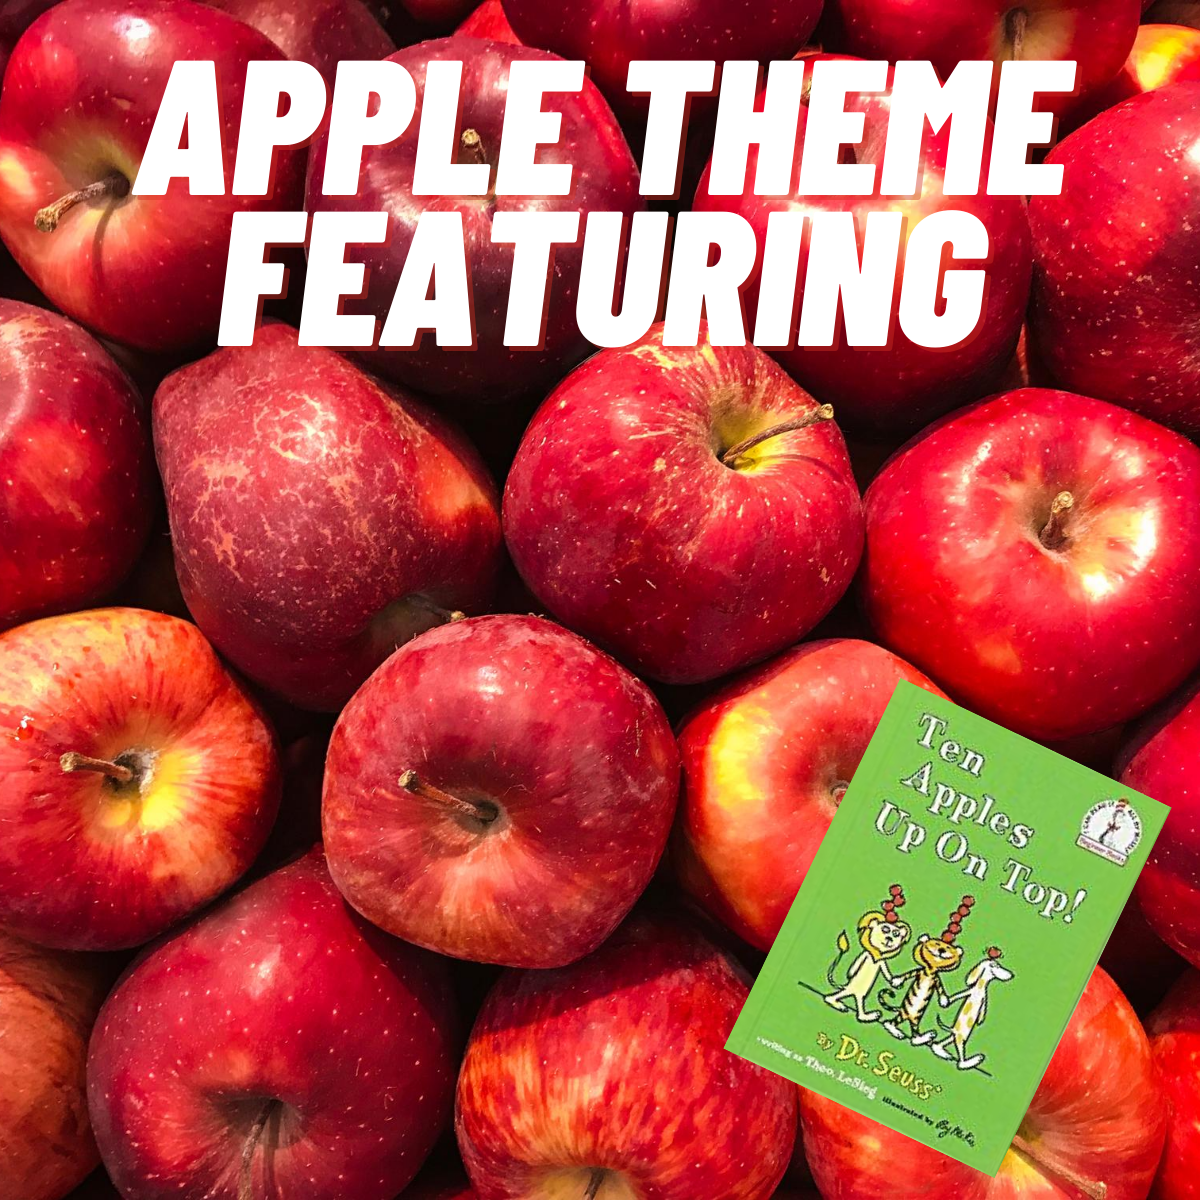 apples theme for preschoolers featuring ten apple up on top by dr seuss